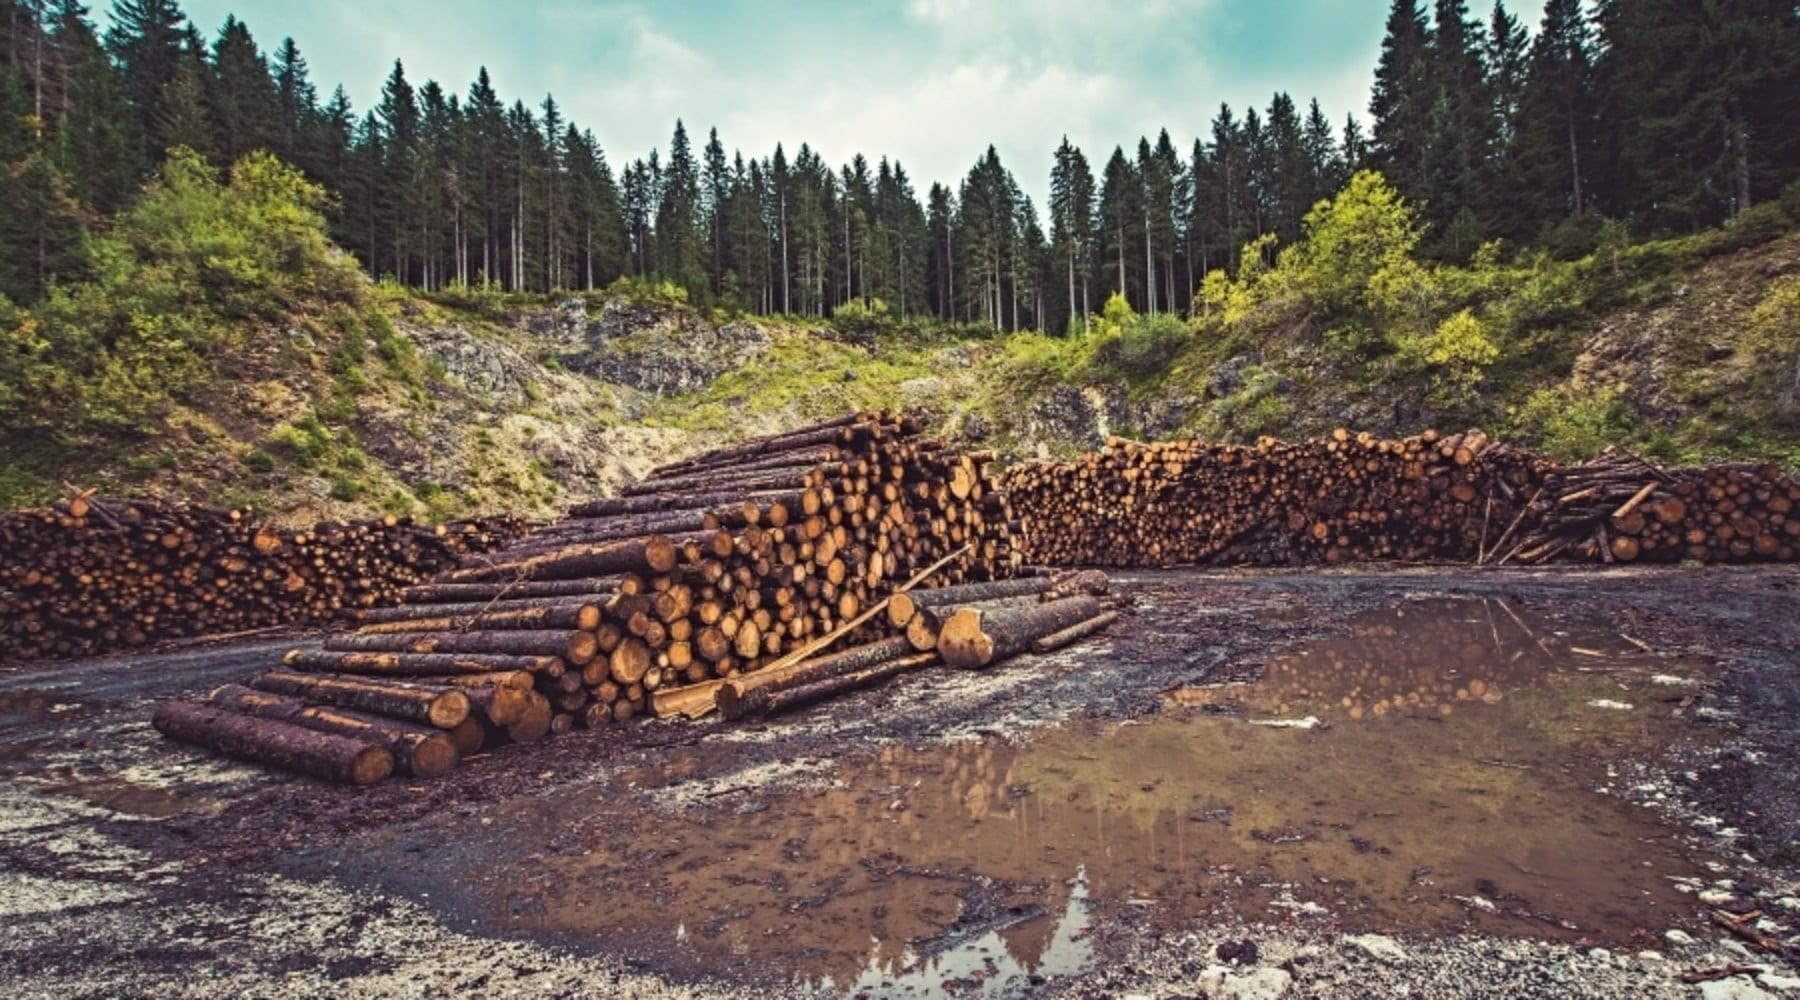 Global Deforestation Slows But Millions of Acres Still Lost